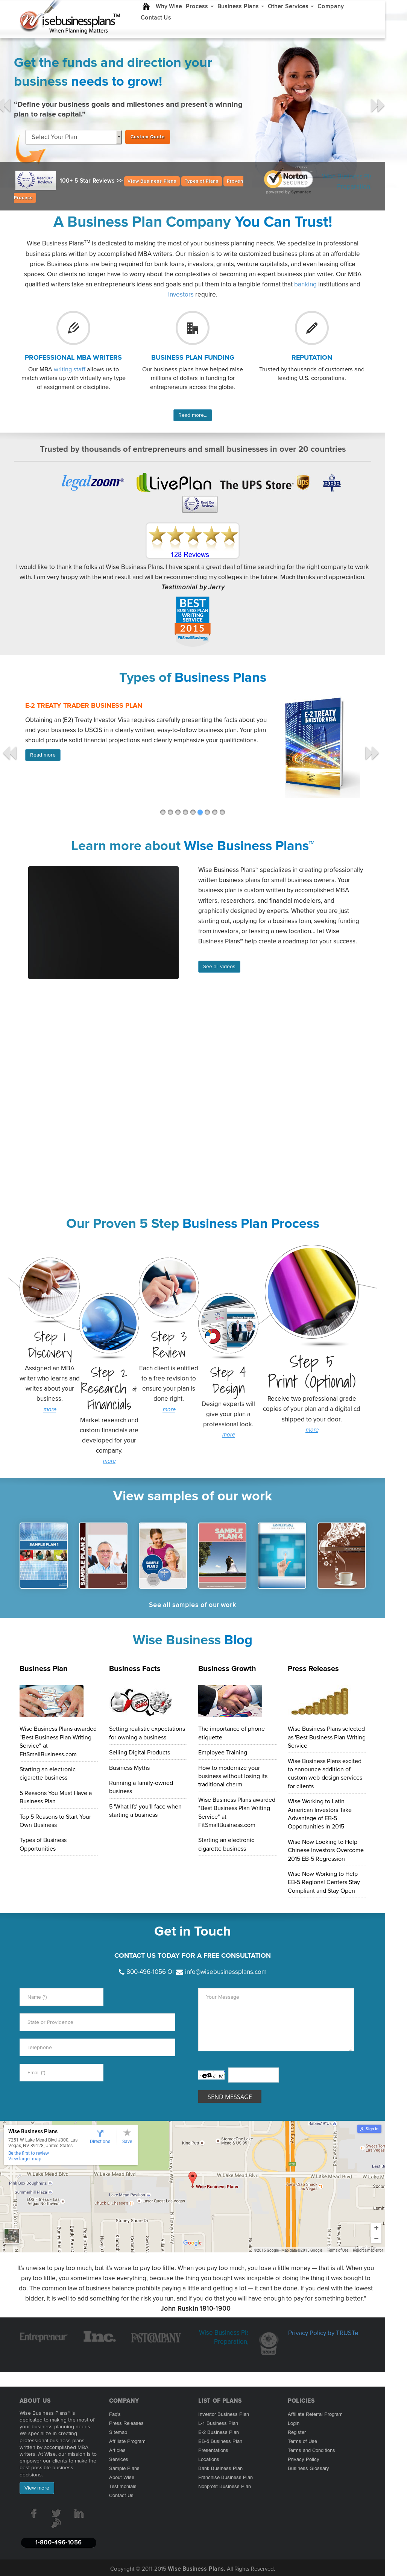 wise business plans reviews